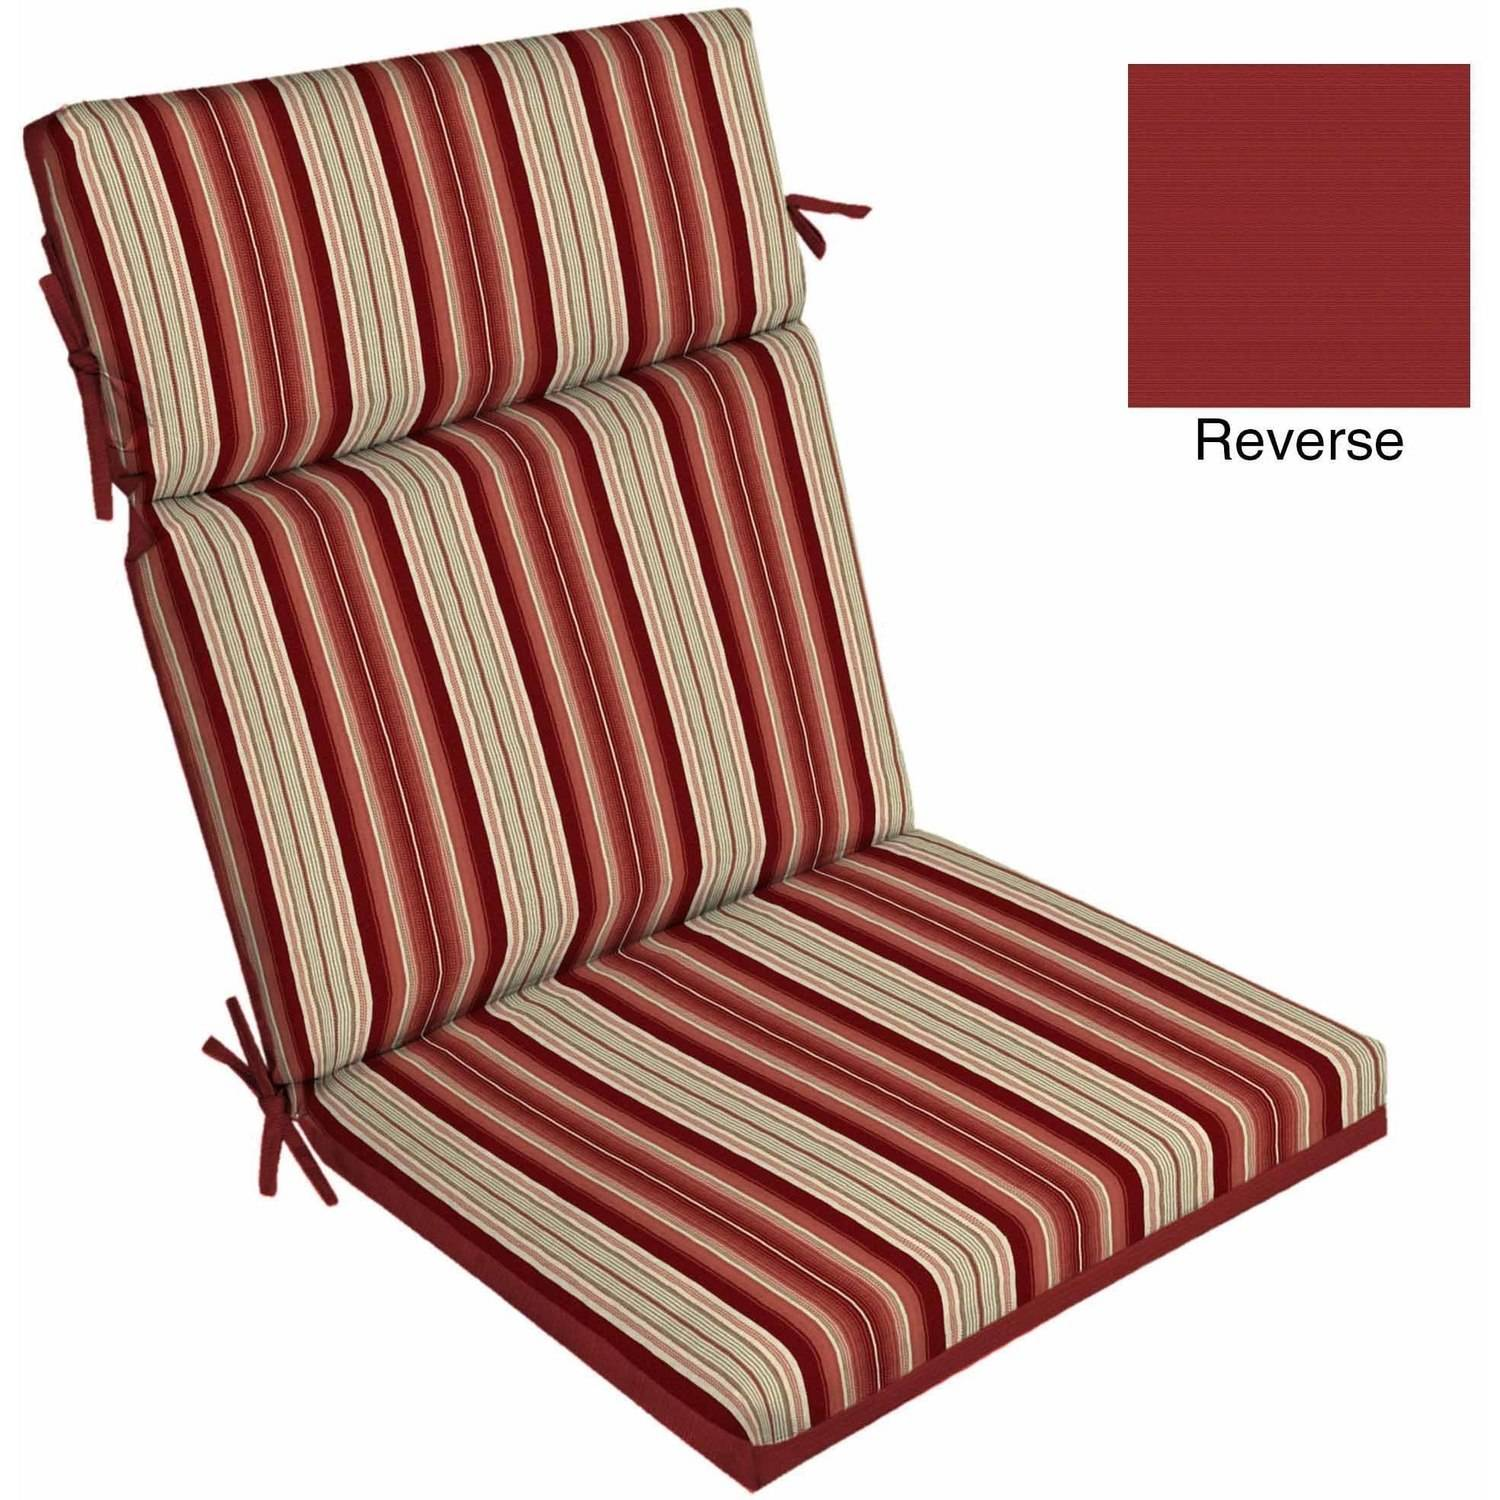 Outdoor Chair Cushions to Change the look of your Patio